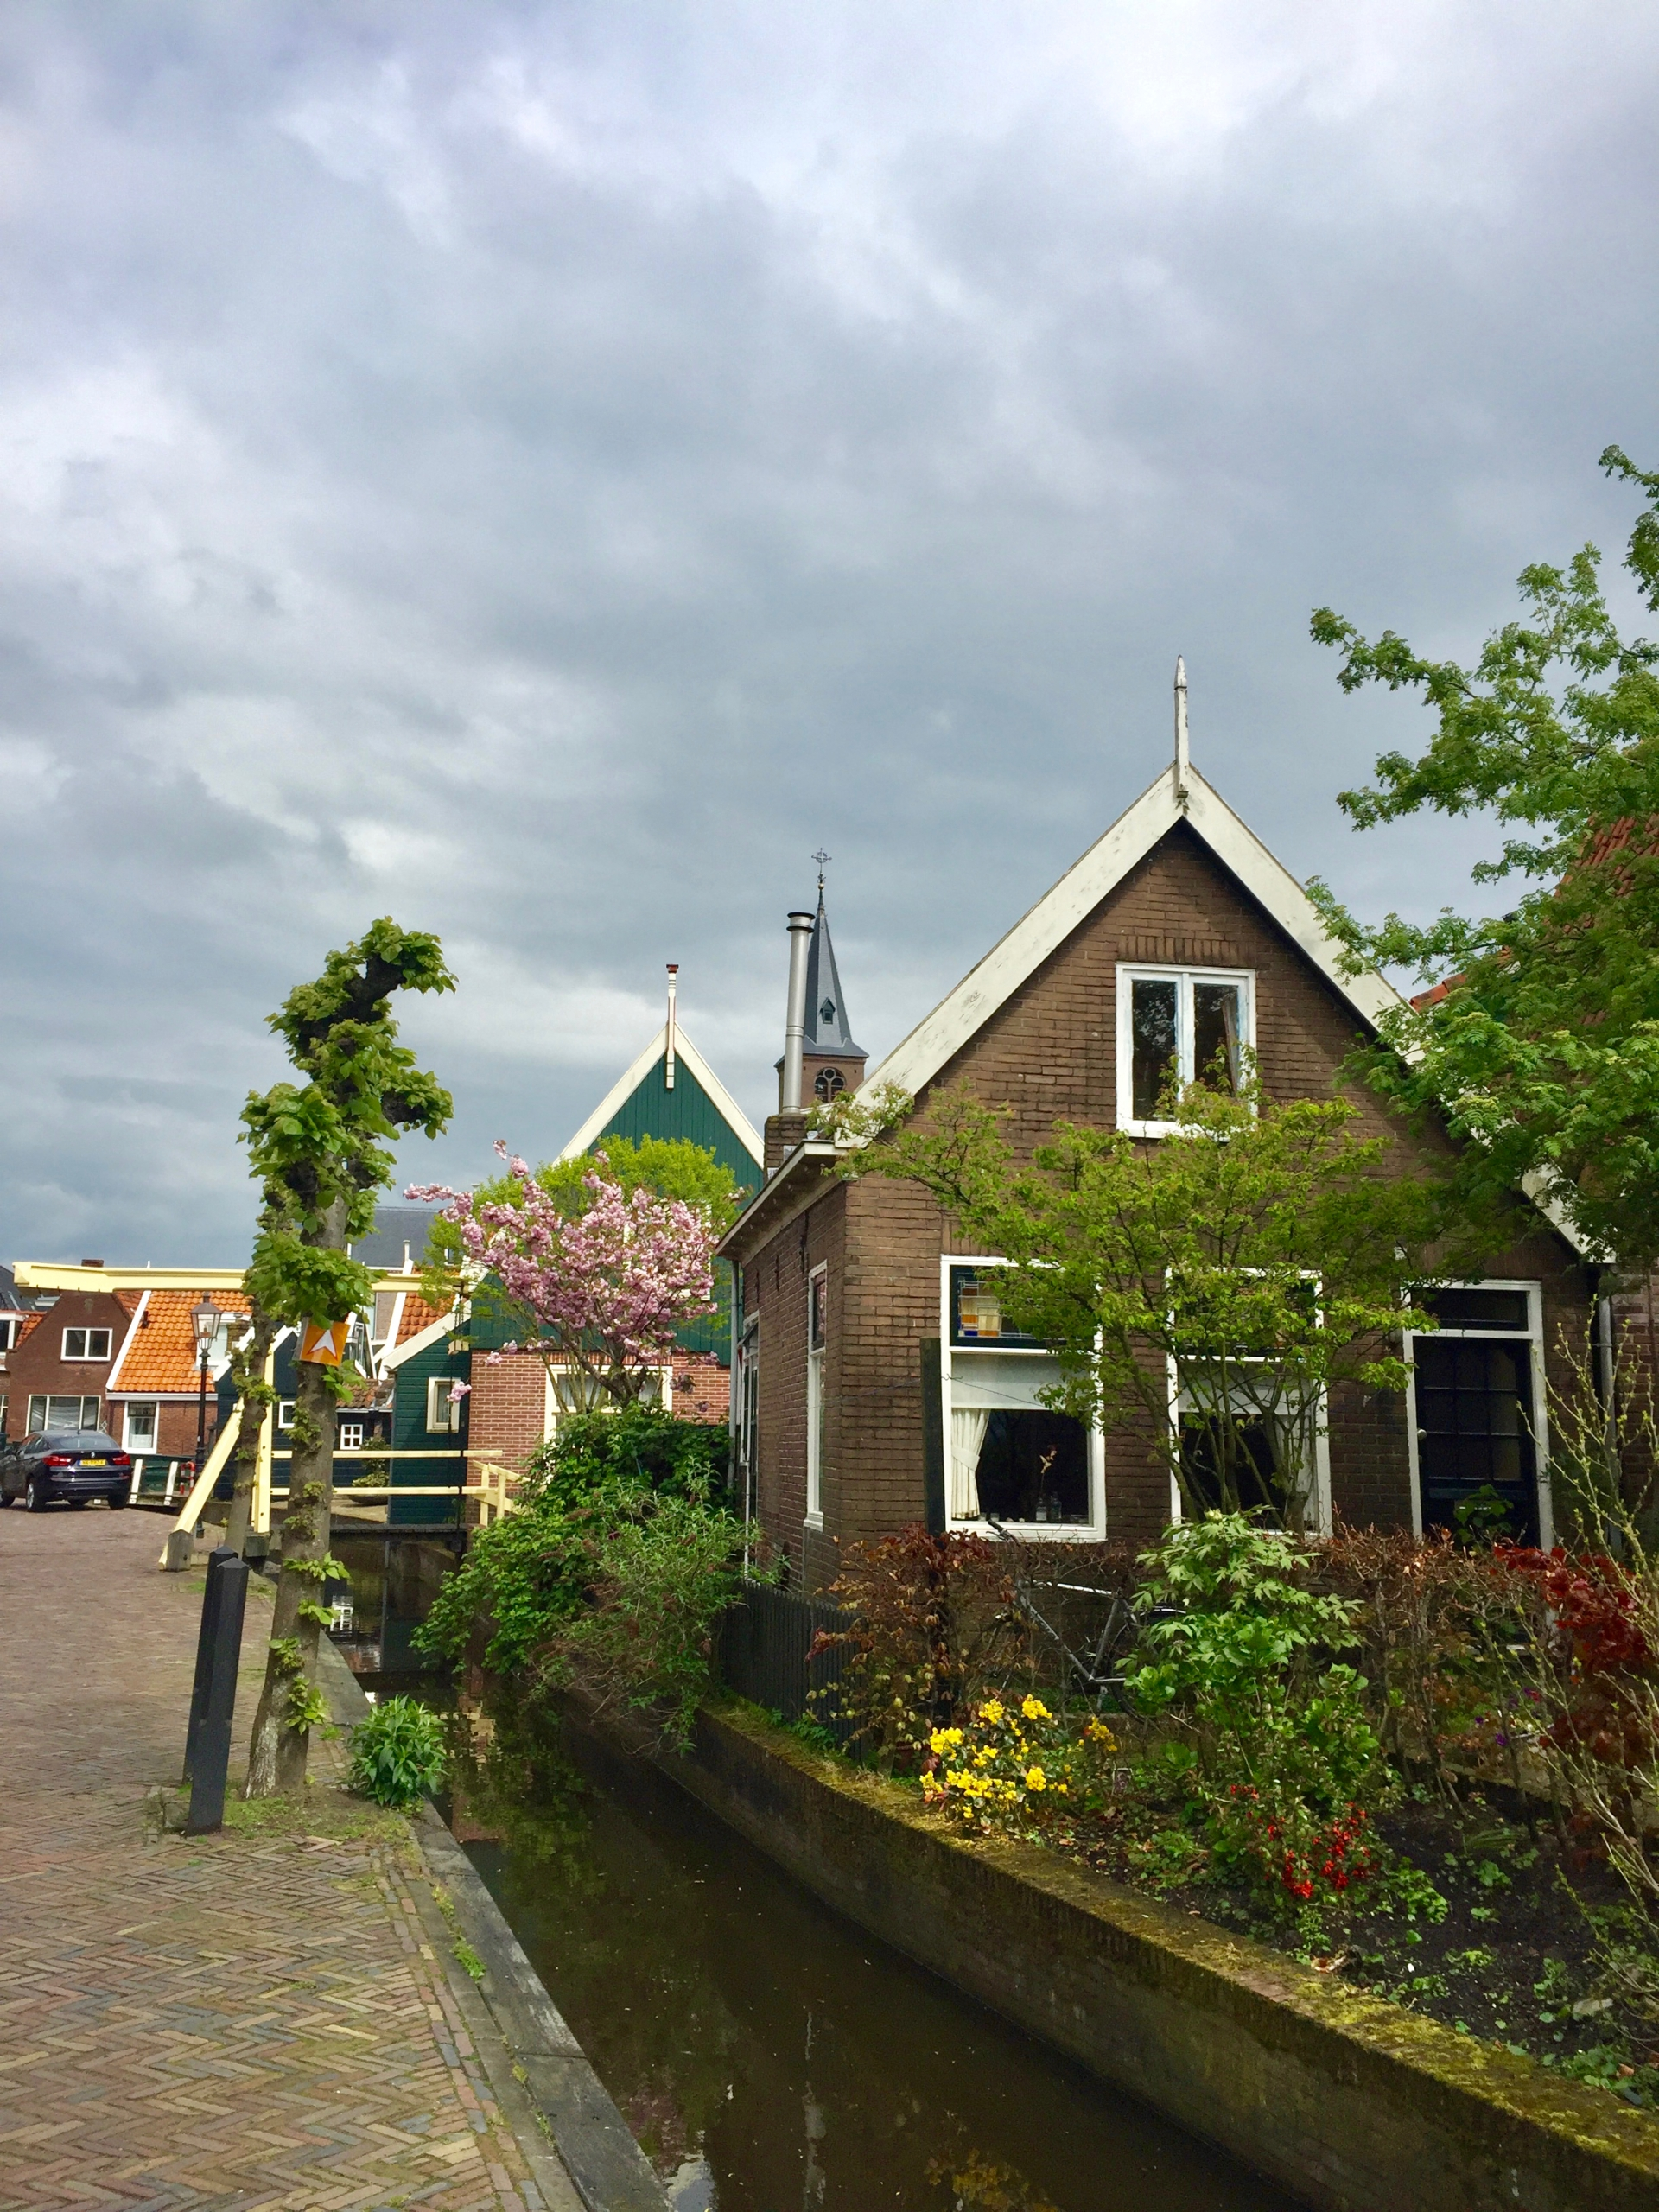 The Netherlands - 27